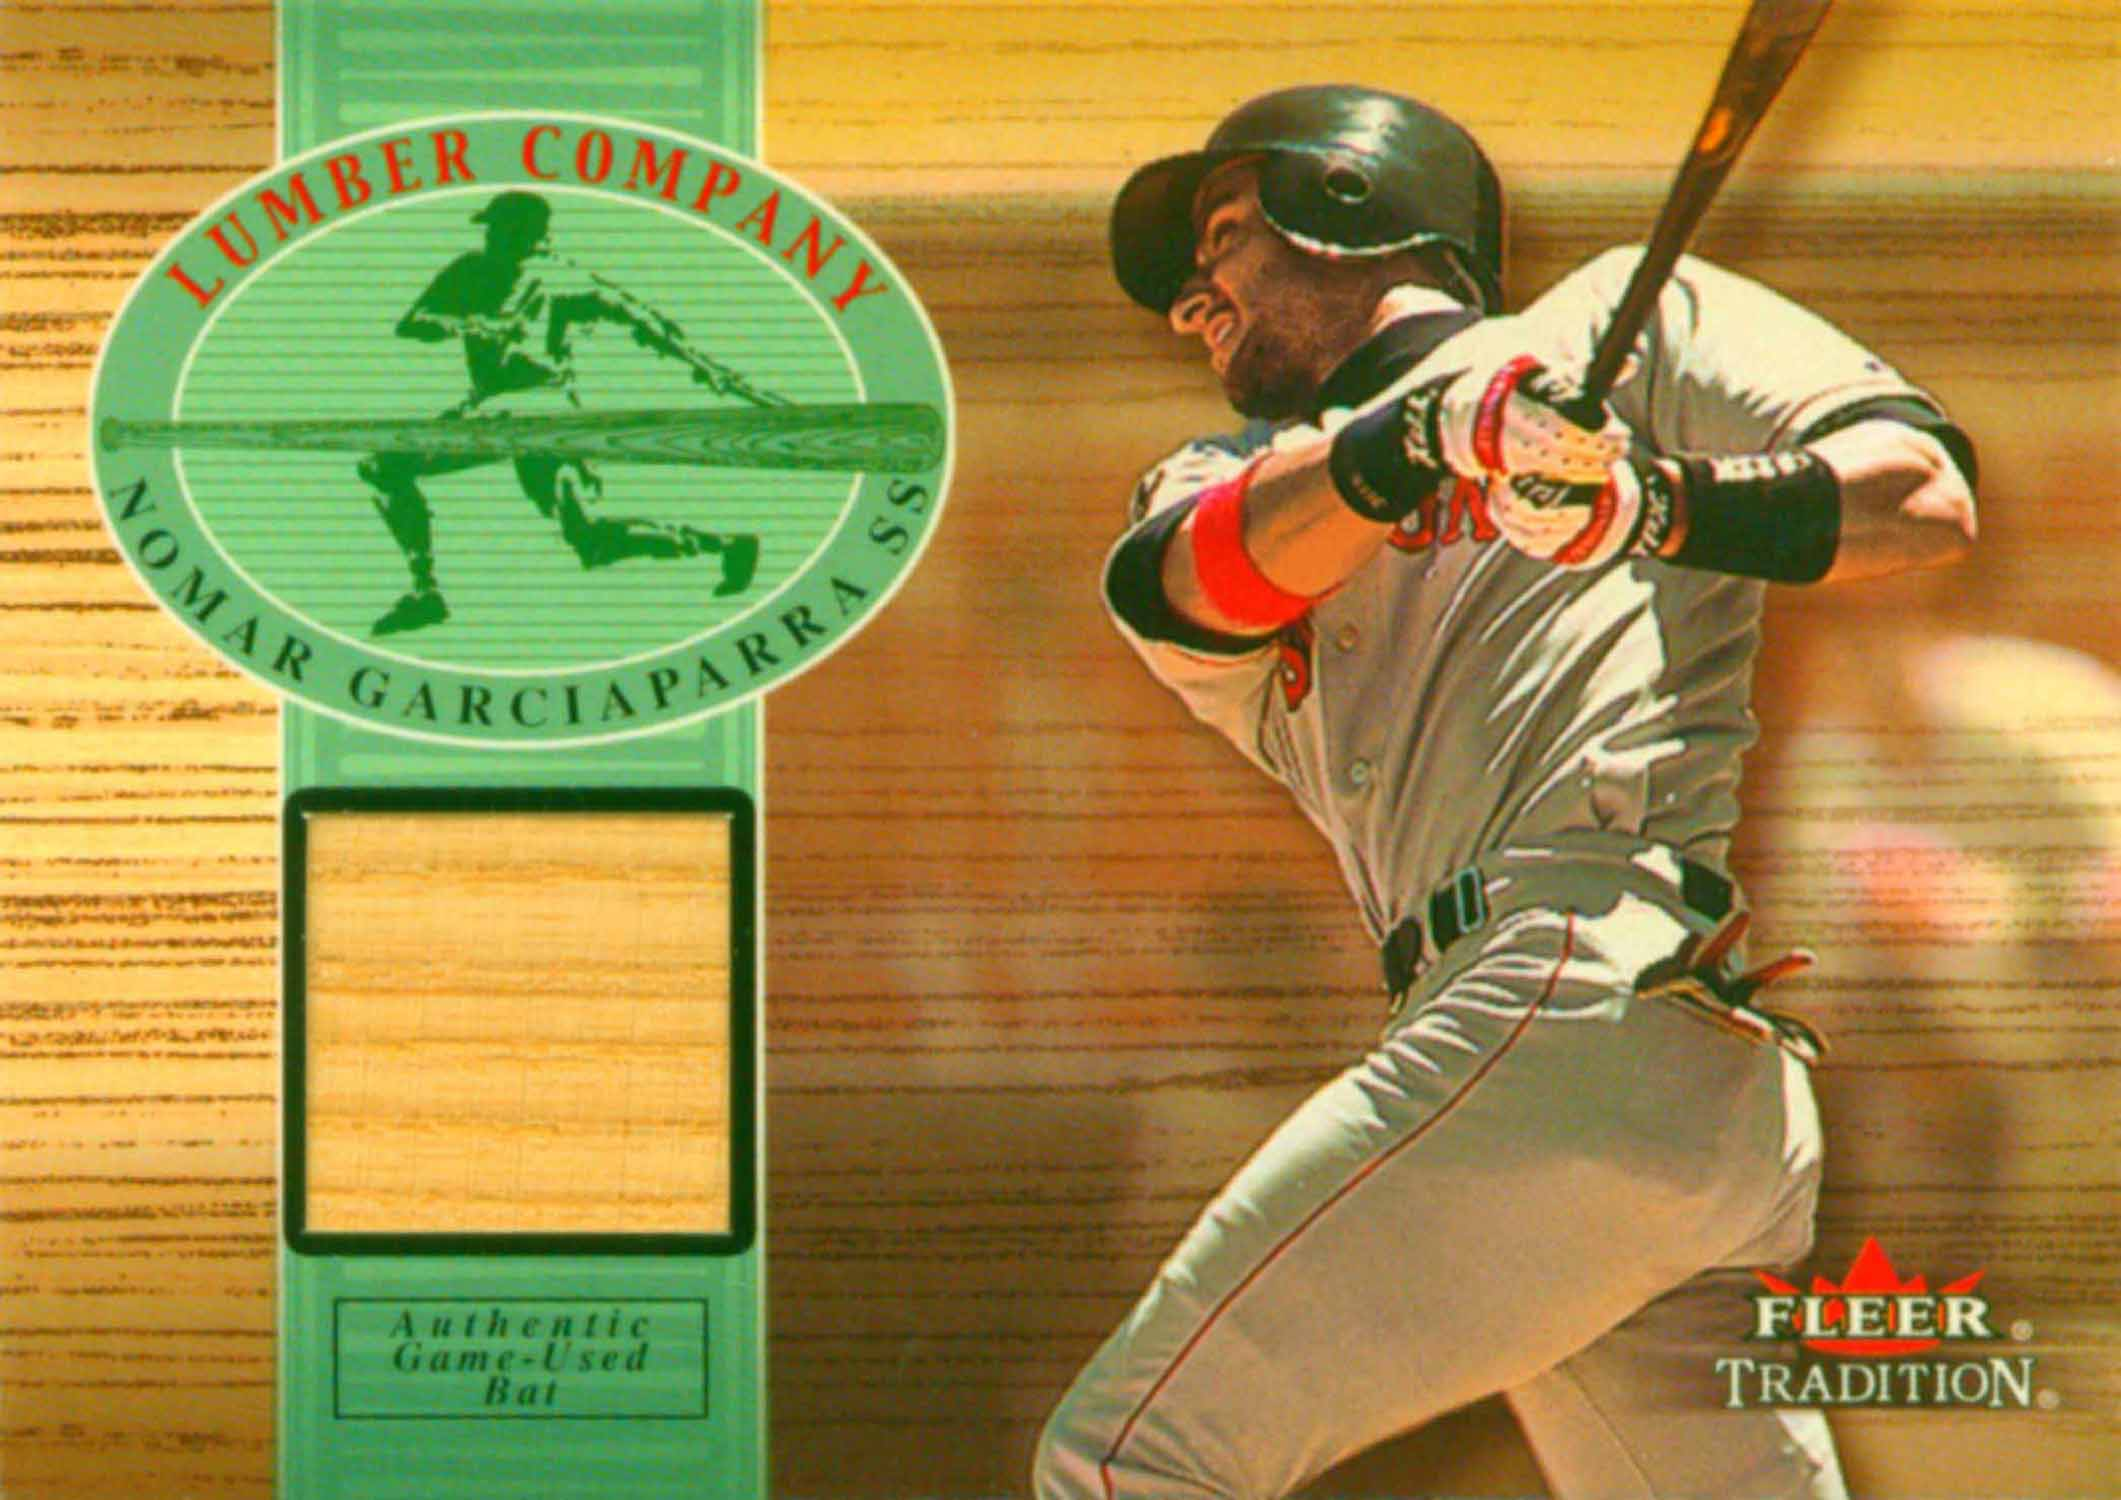 2002 Fleer Tradition Lumber Company Game Bat